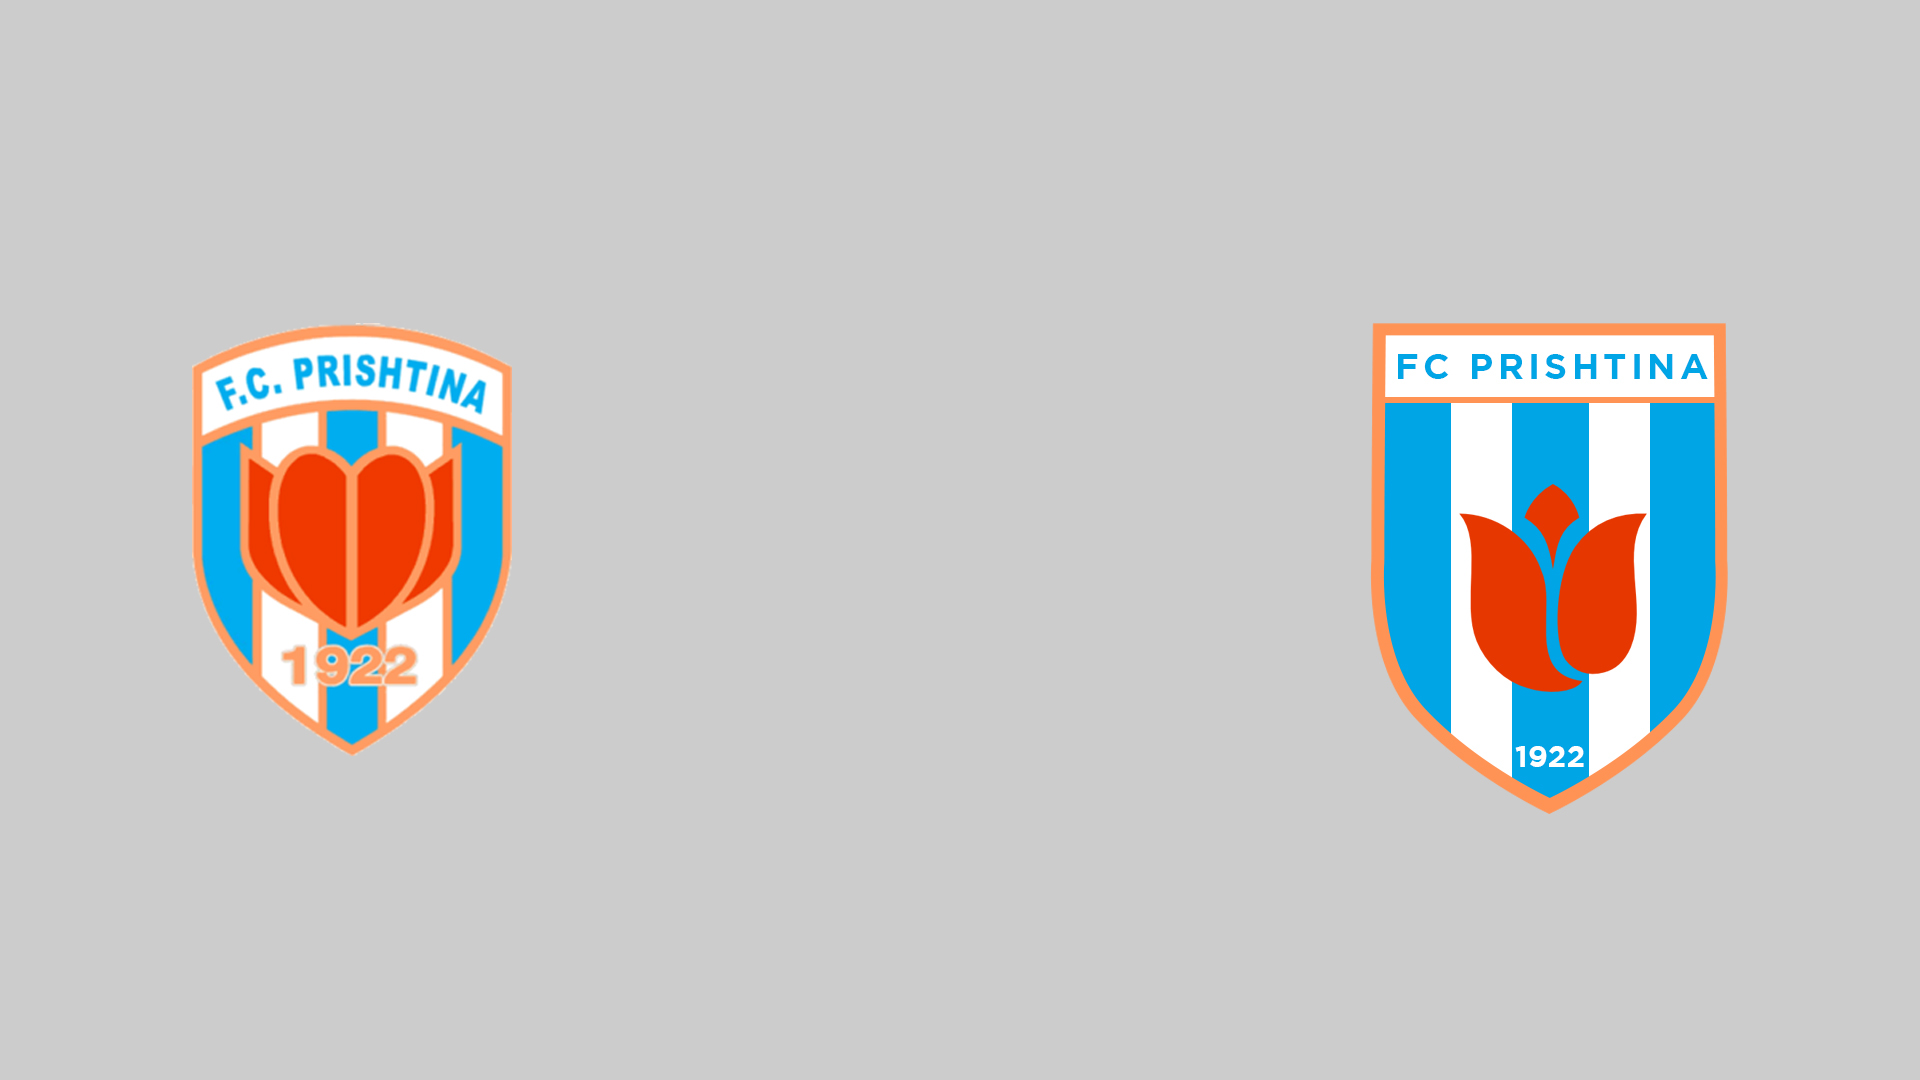 REDESIGN OF THE LOGOS FROM THE FOOTBALL LEAGUE KOSOVO on Behance